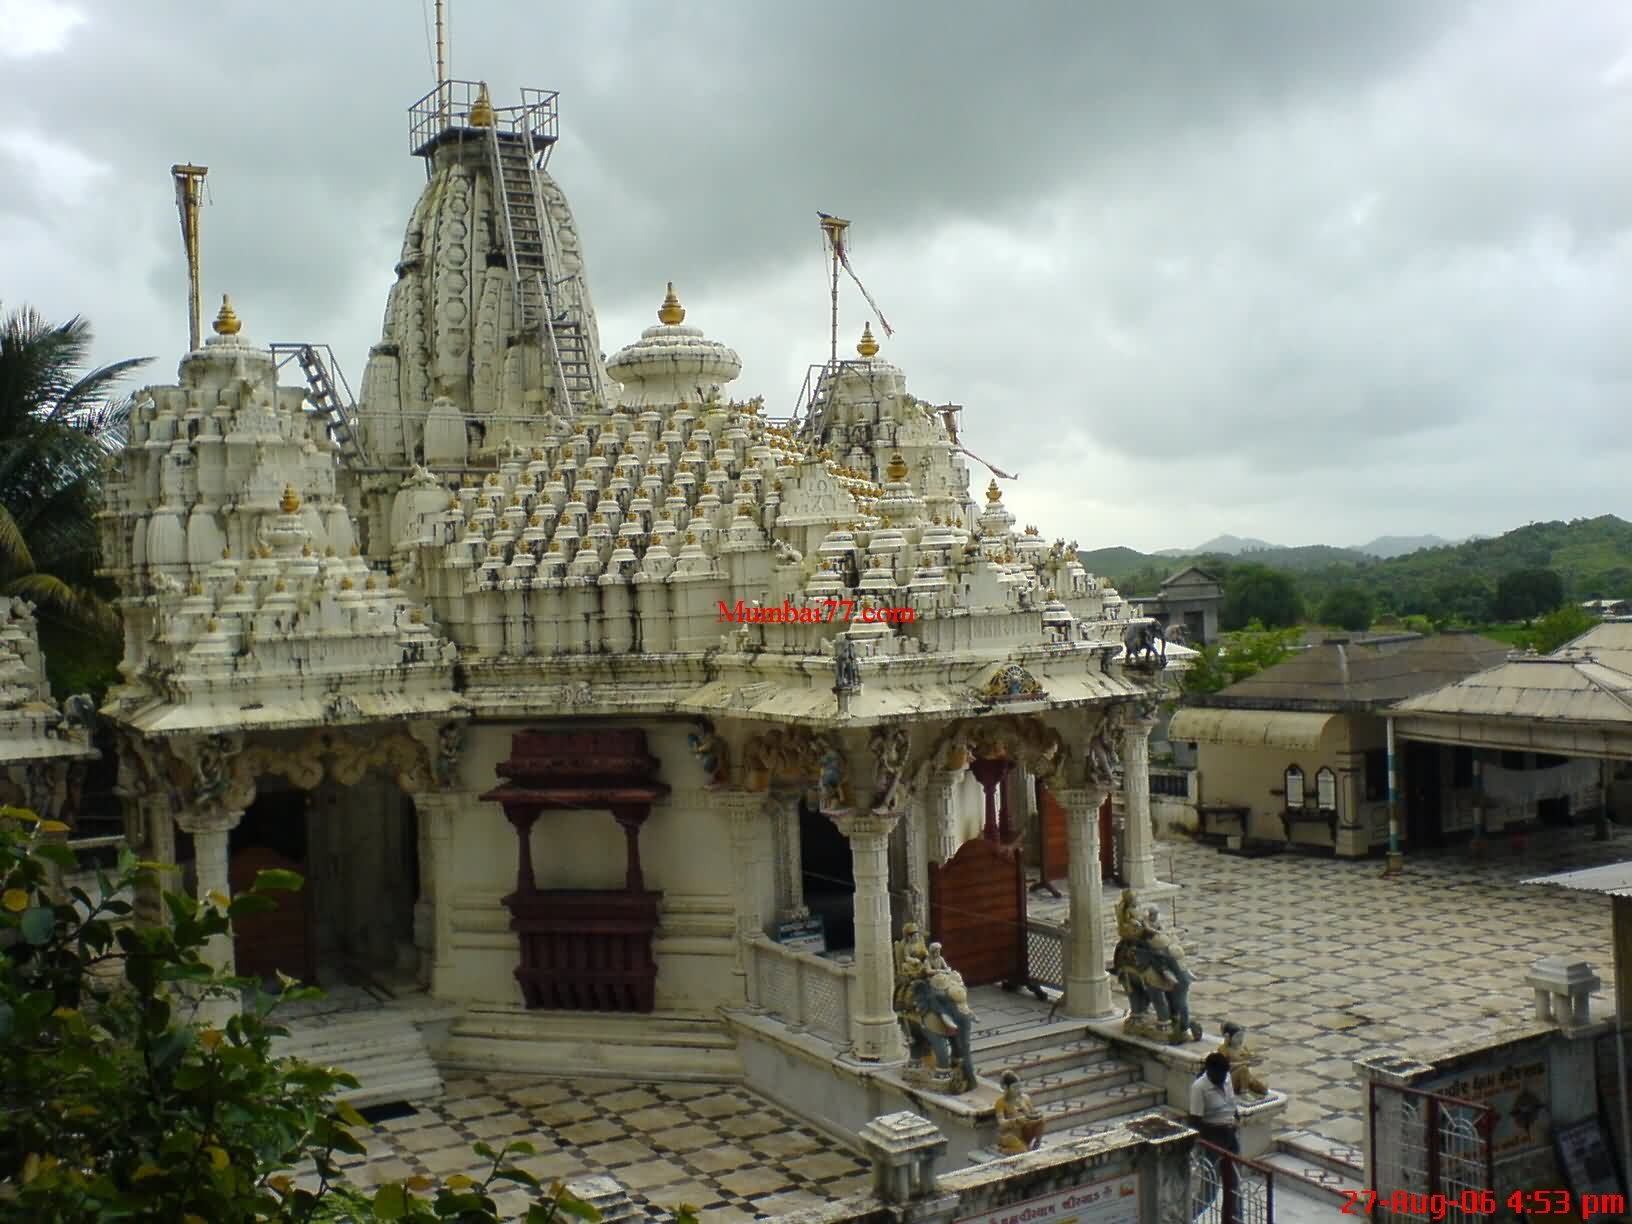 Mahavir Dham Temple